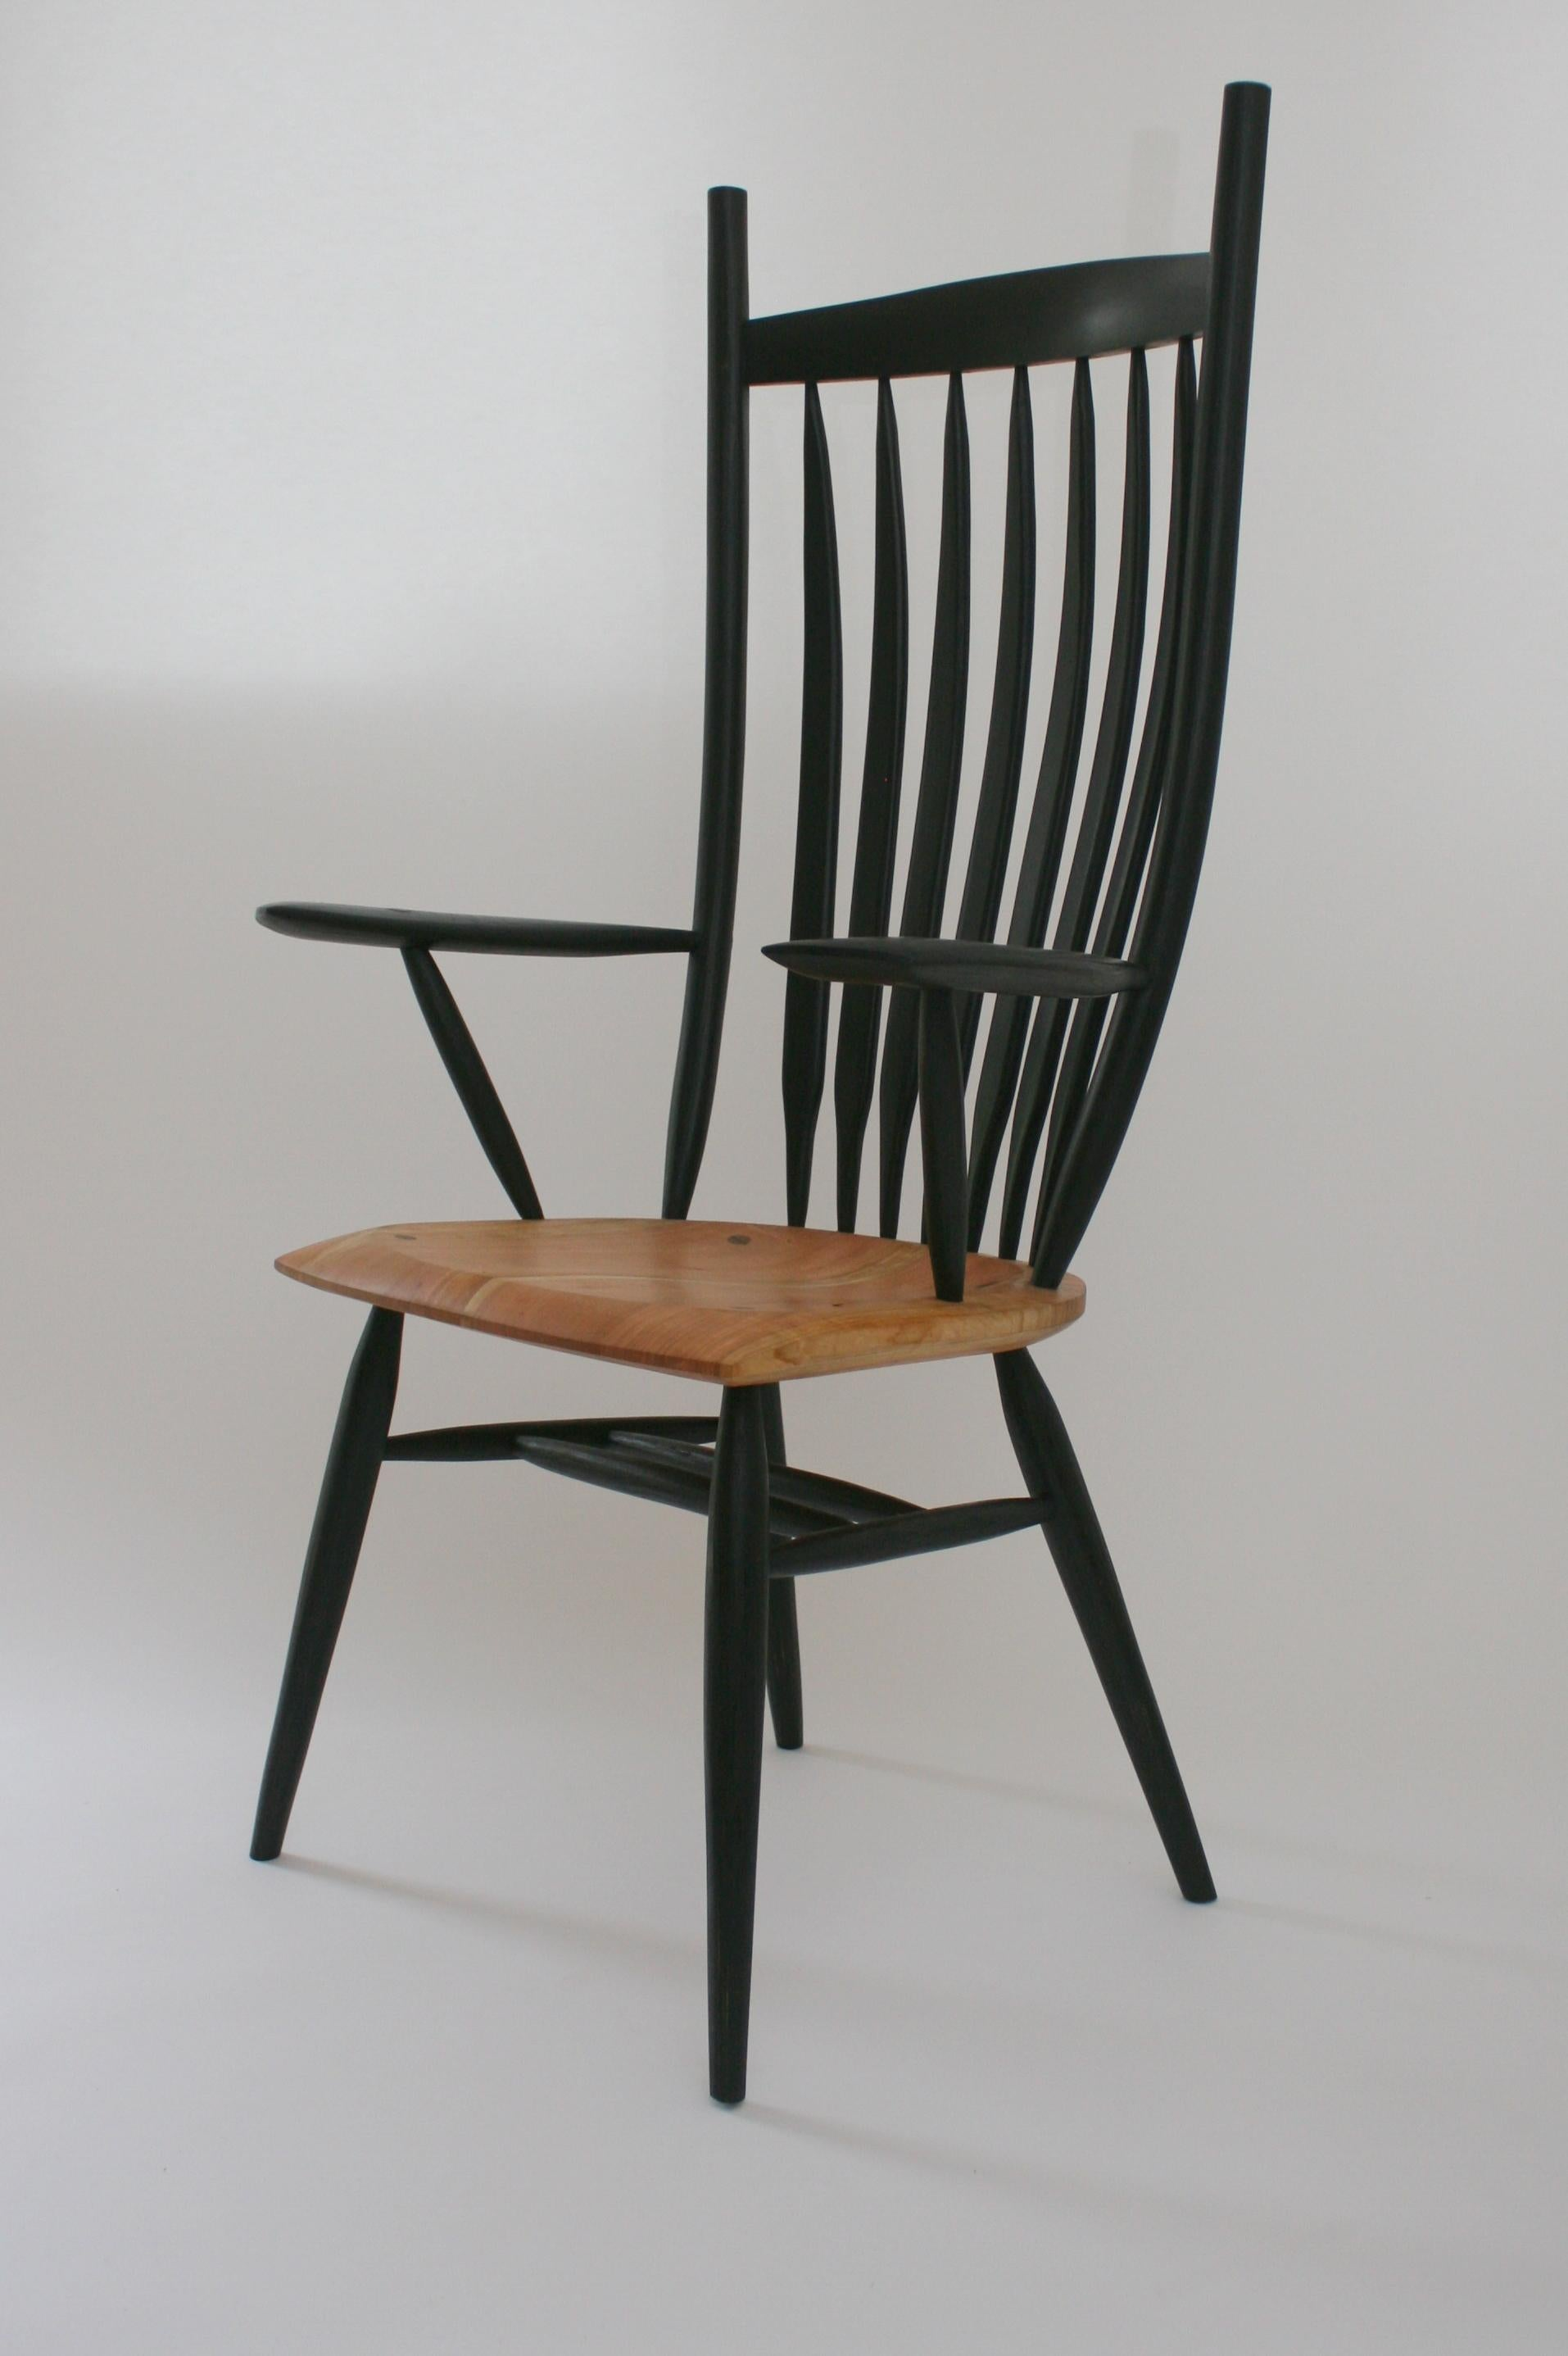 Studio Chairs Set Of 10 Handcrafted Studio Bent Chairs By Fabian Fischer Germany 2019